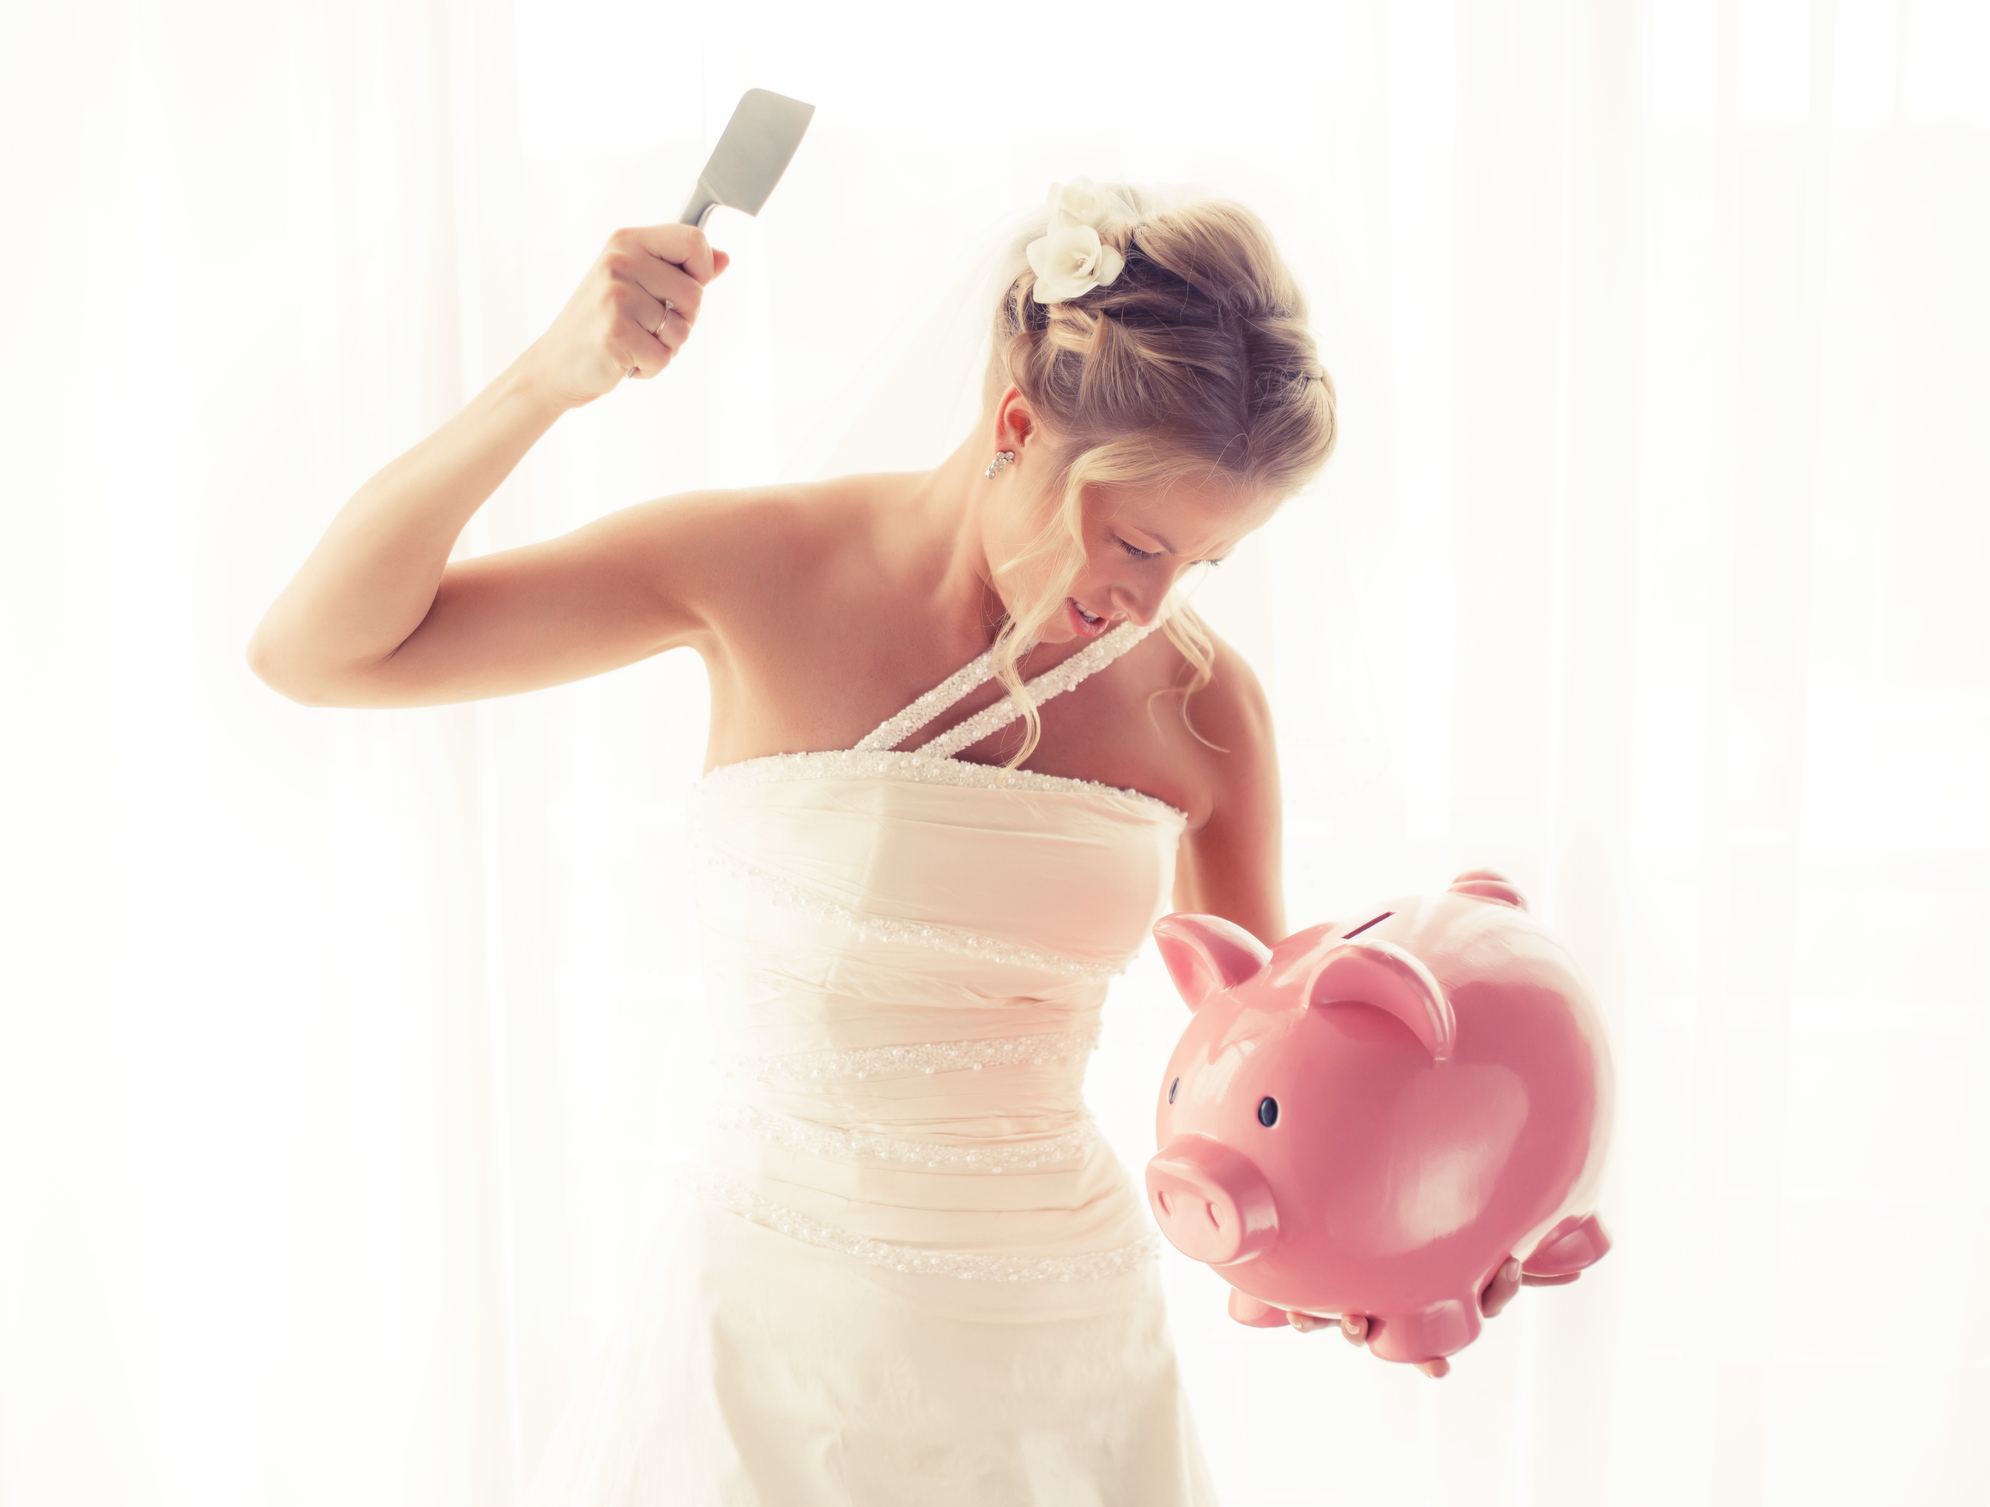 Average Monetary Gift For A Wedding: Don't Forget To Budget For These Commonly Forgotten